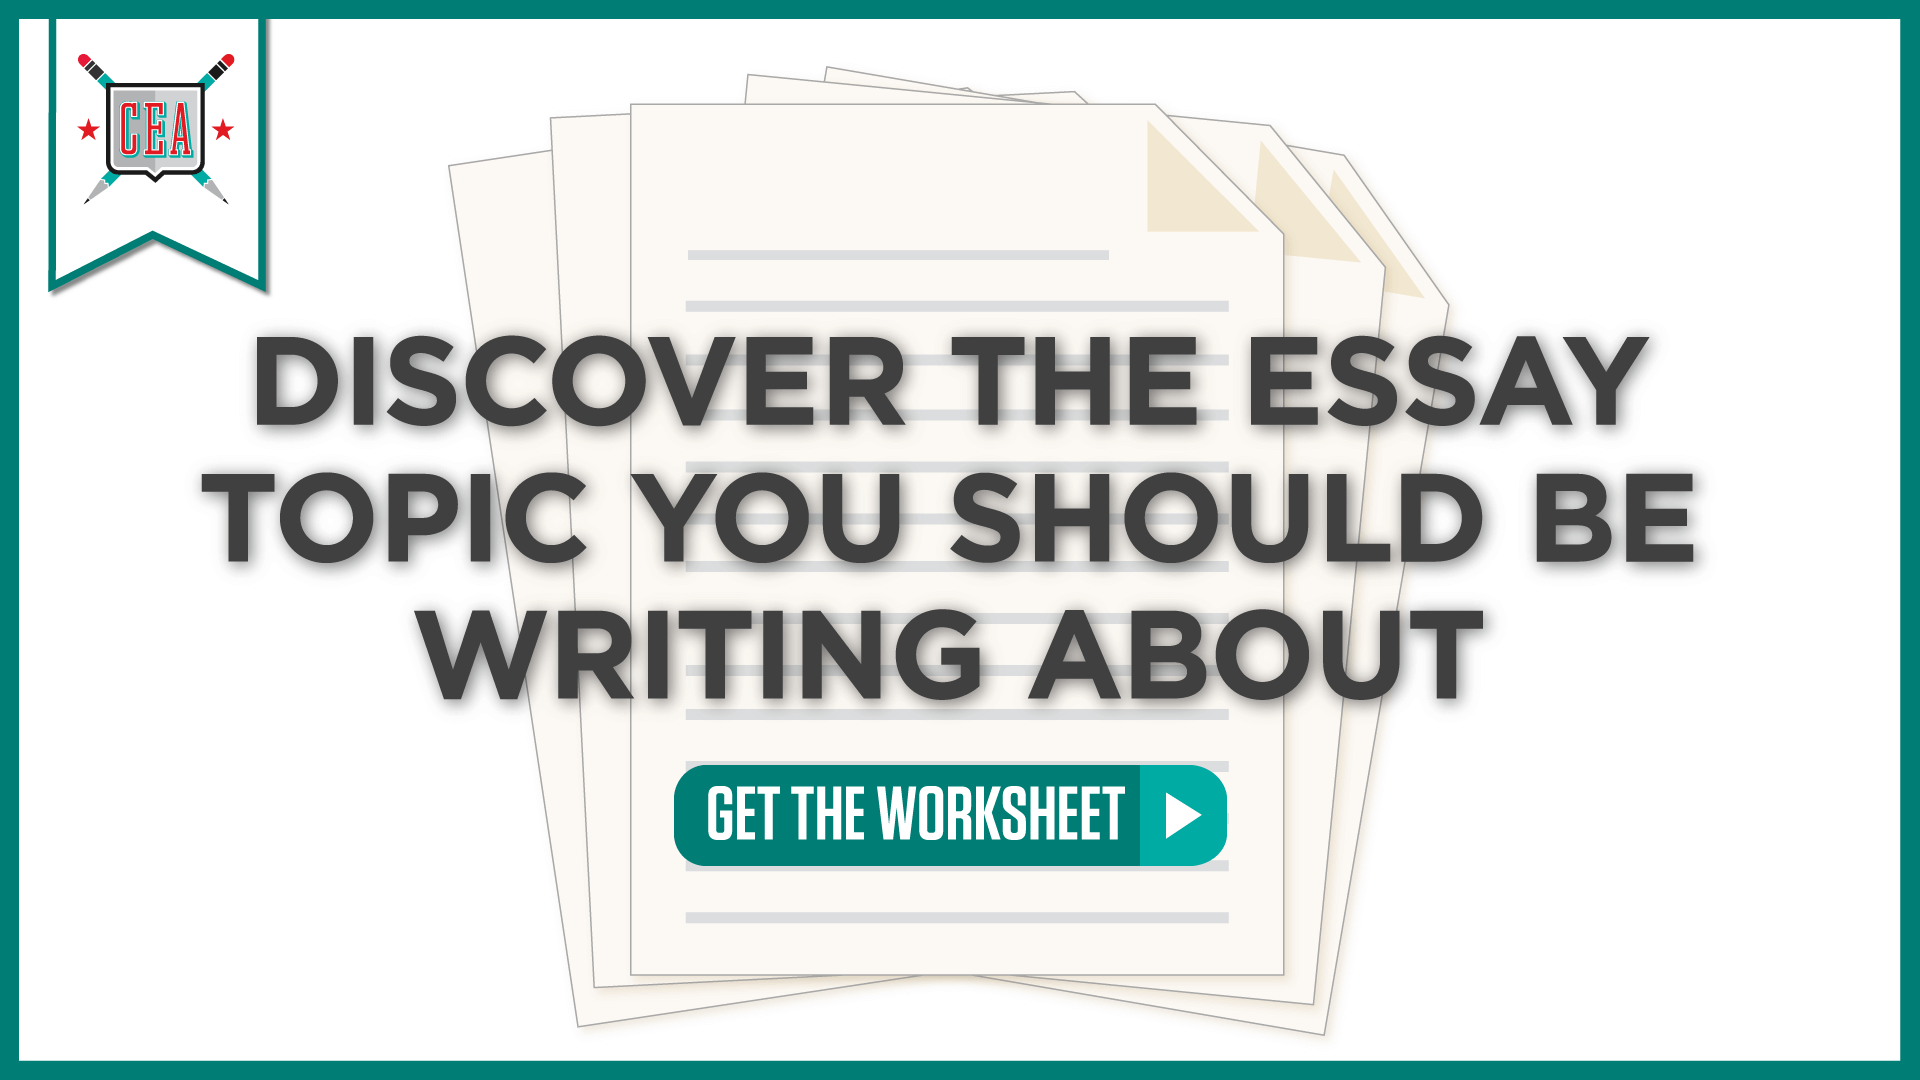 Discover The Essay Topic You Should Be Writing About